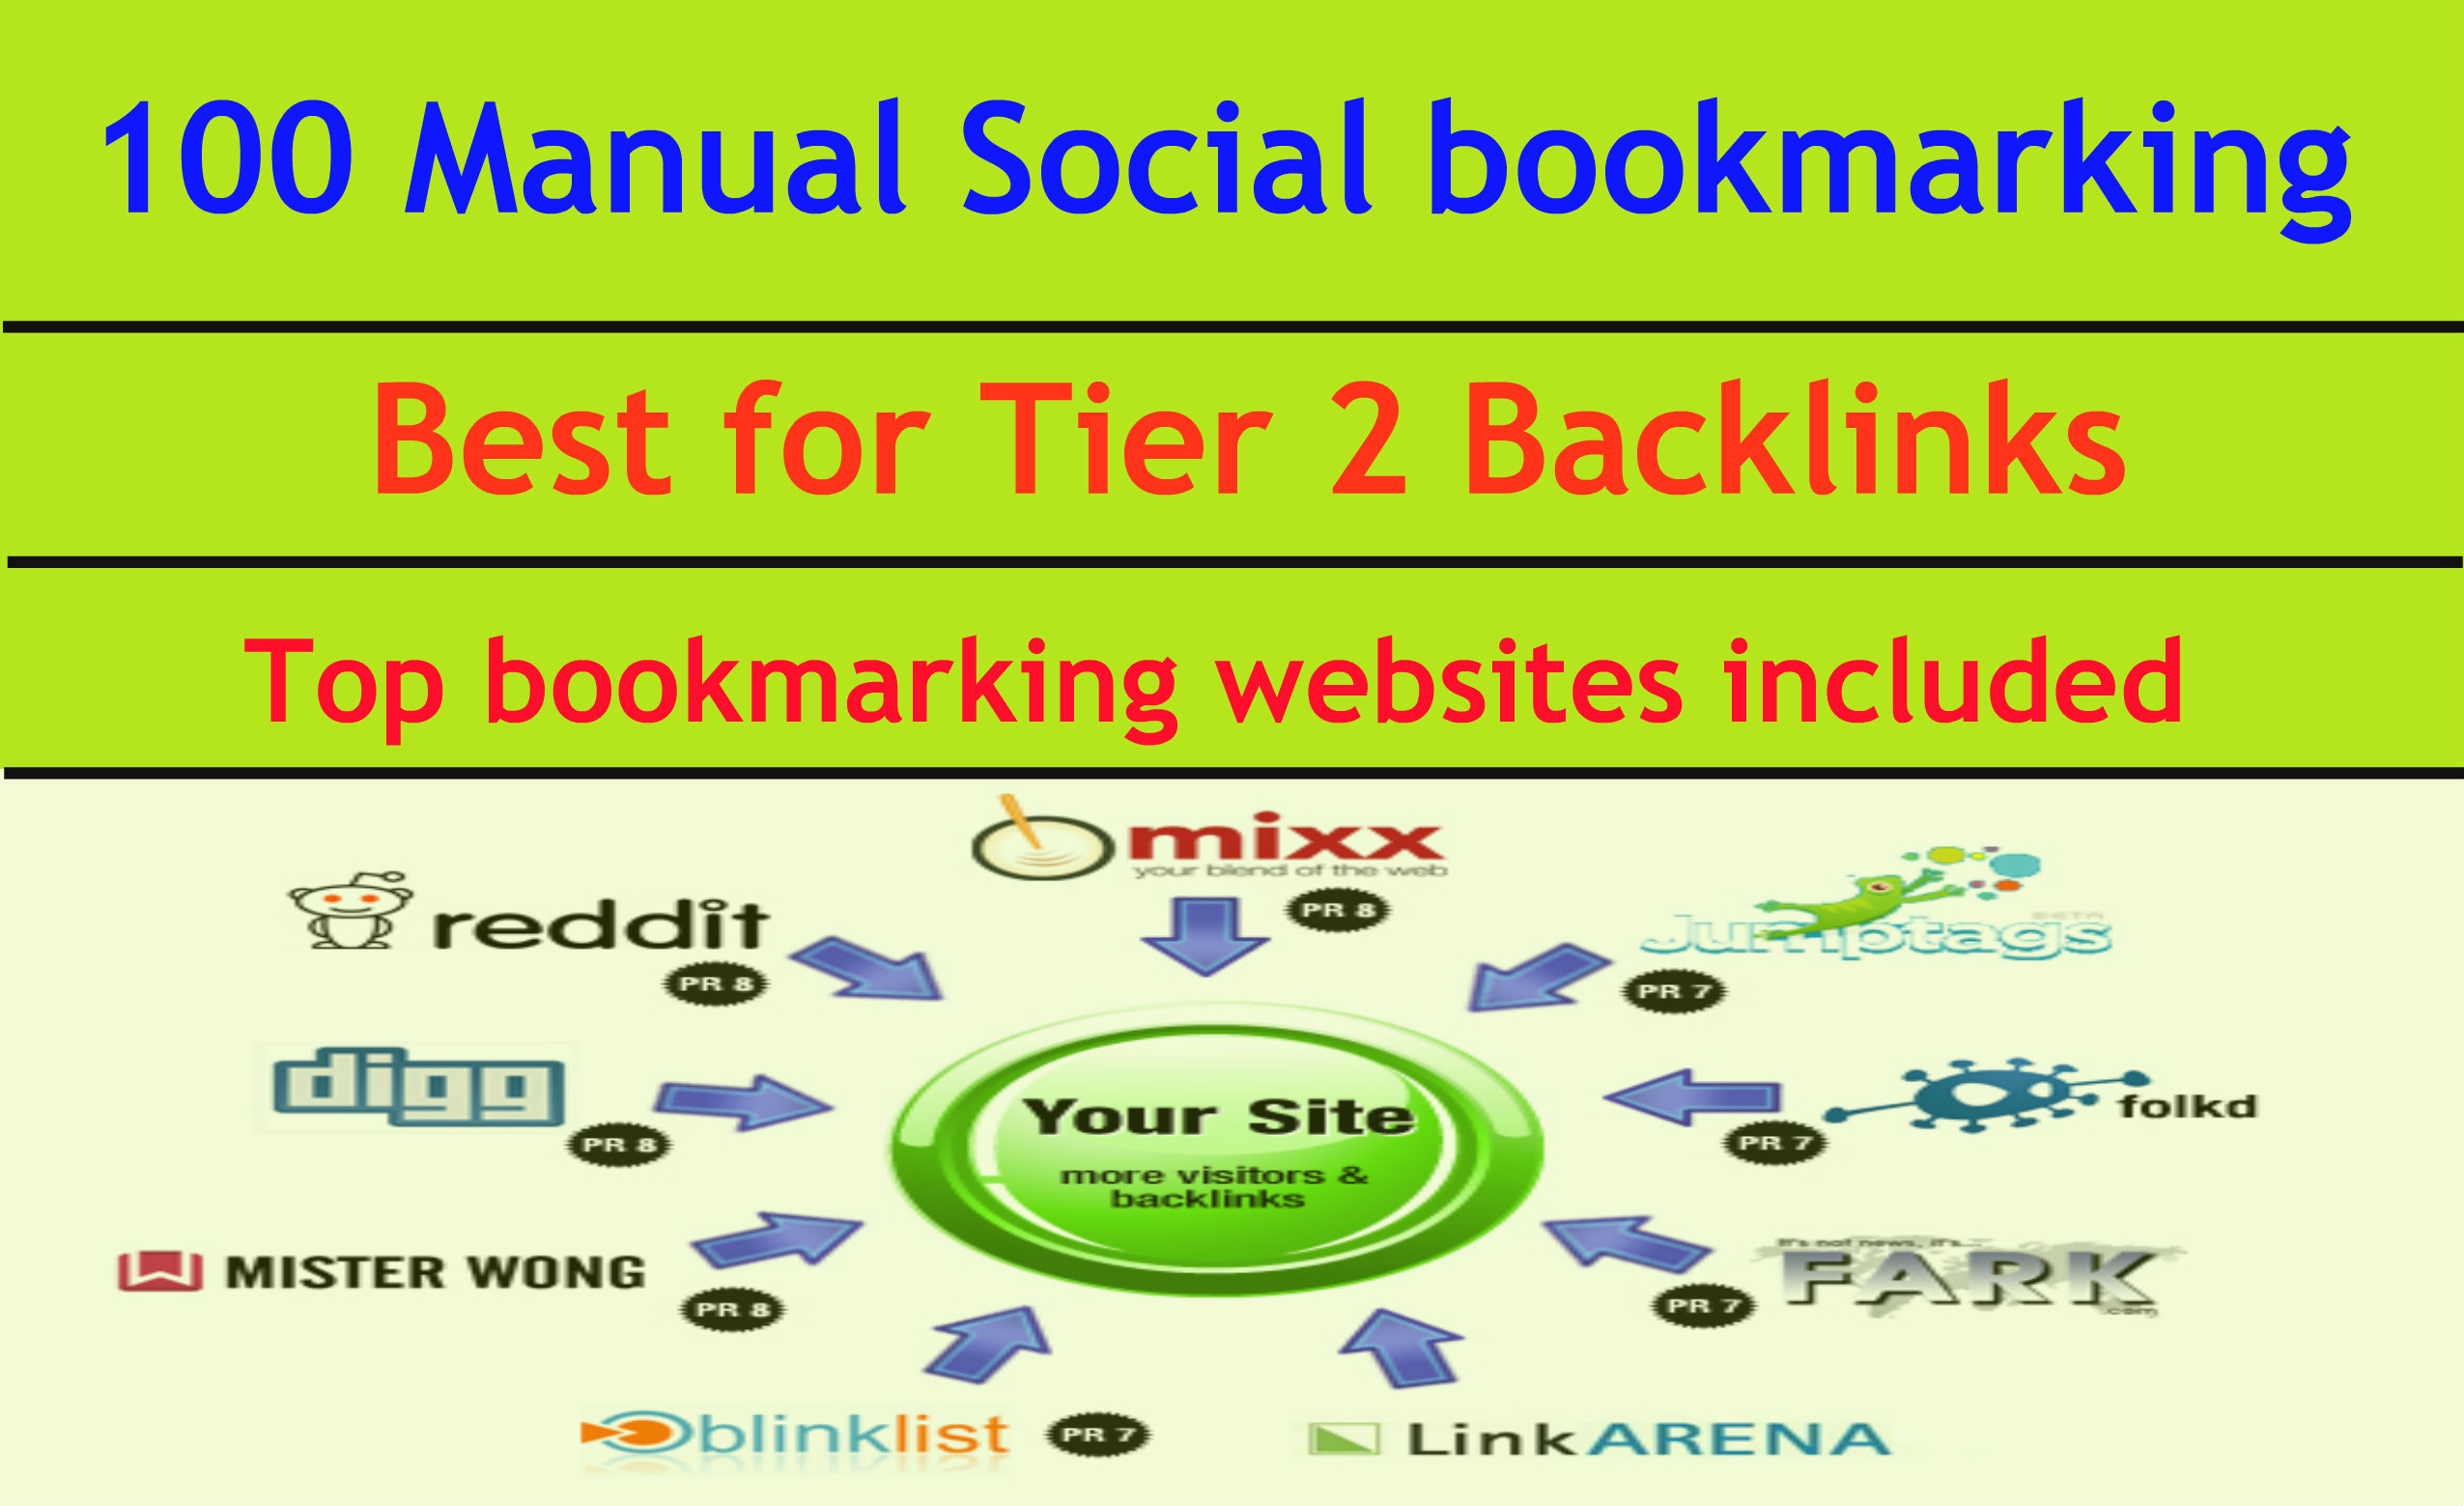 100 manual social bookmarking service - best for your tier2 backlinks